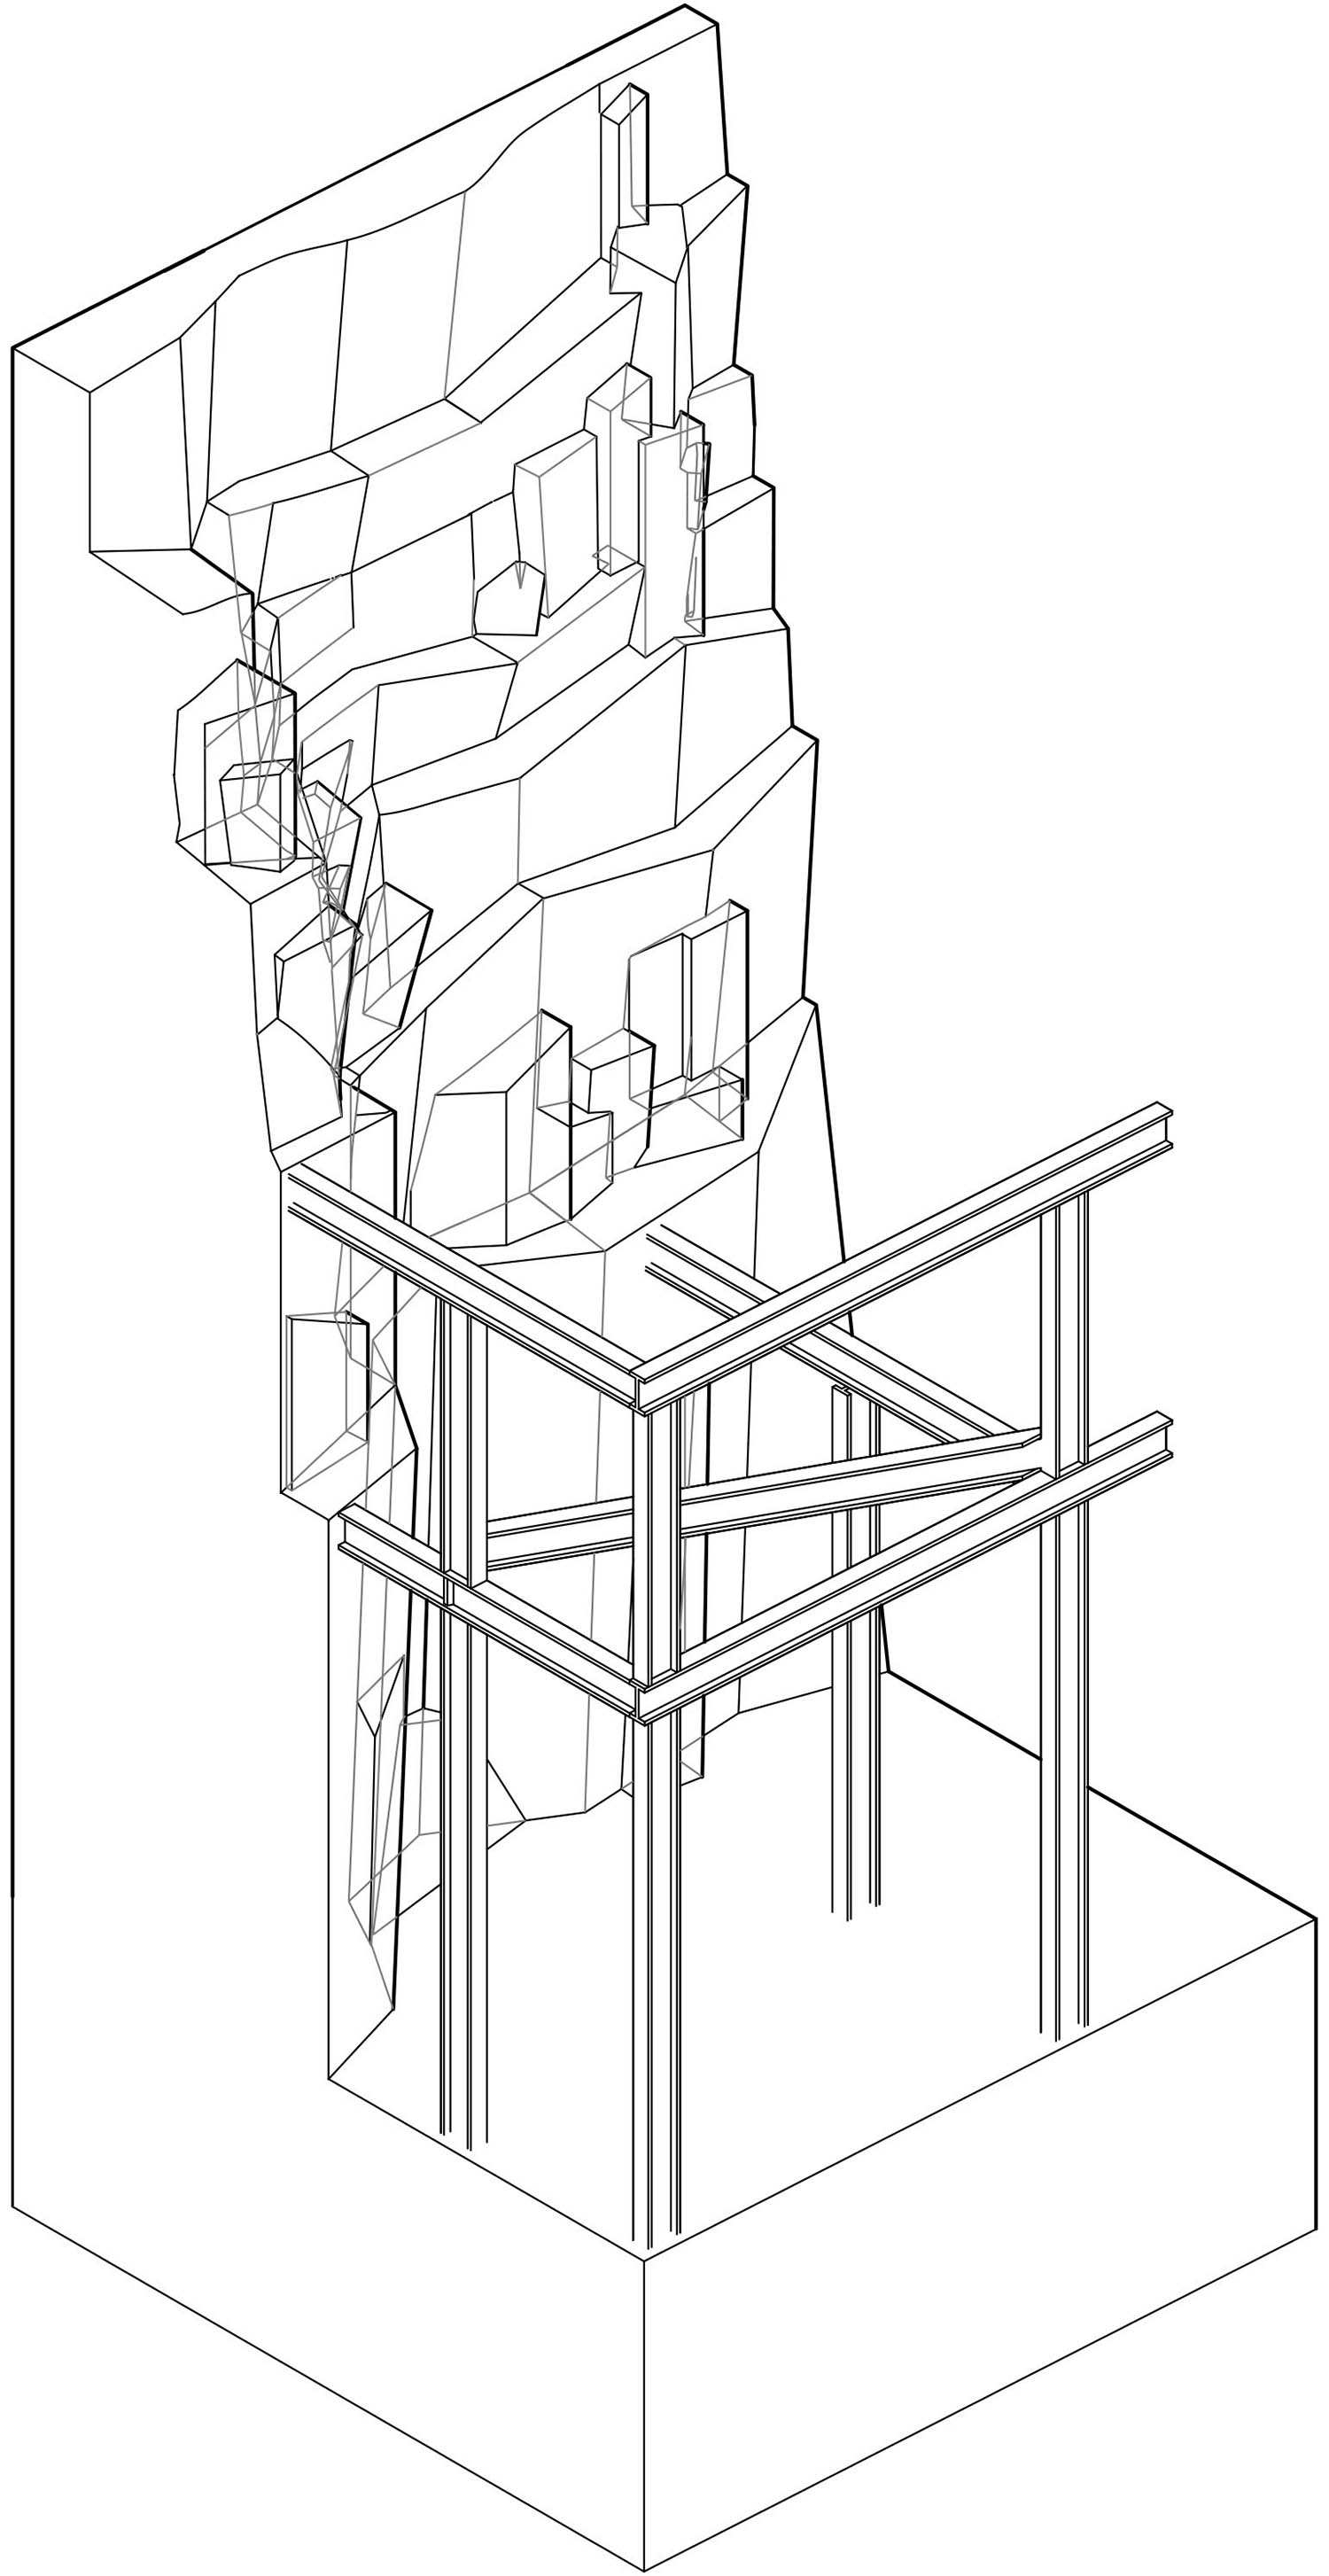 PARTI_14_InvisibleCities_Drawing.jpg